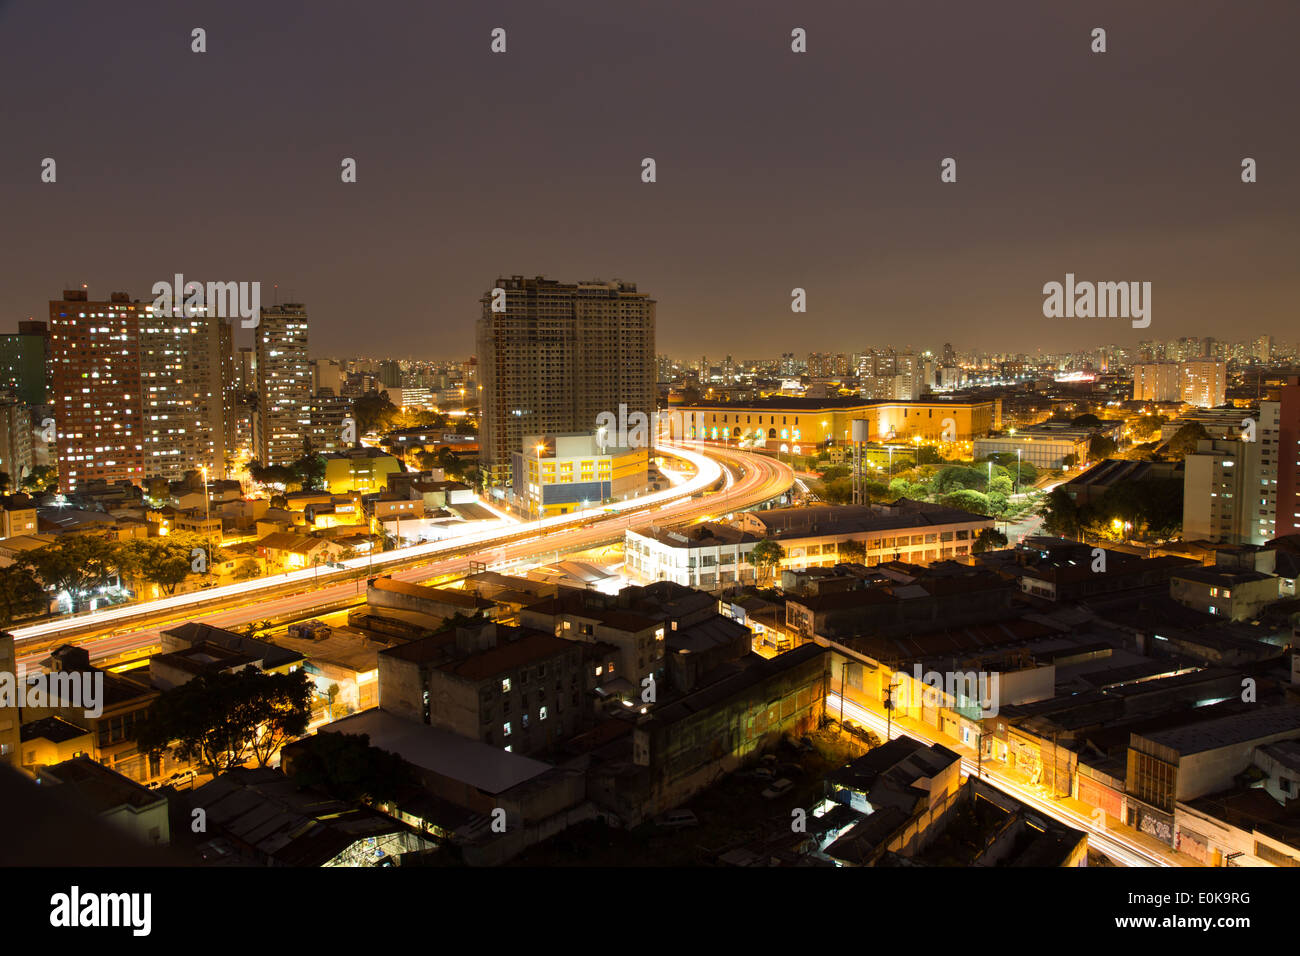 Aerial view of the city at night, Viaduto do Glicerio (Glicerio viaduct) or Viaduto Leste-Oeste (East-West Viaduct), Liberdade District, Sao Paulo - Stock Image